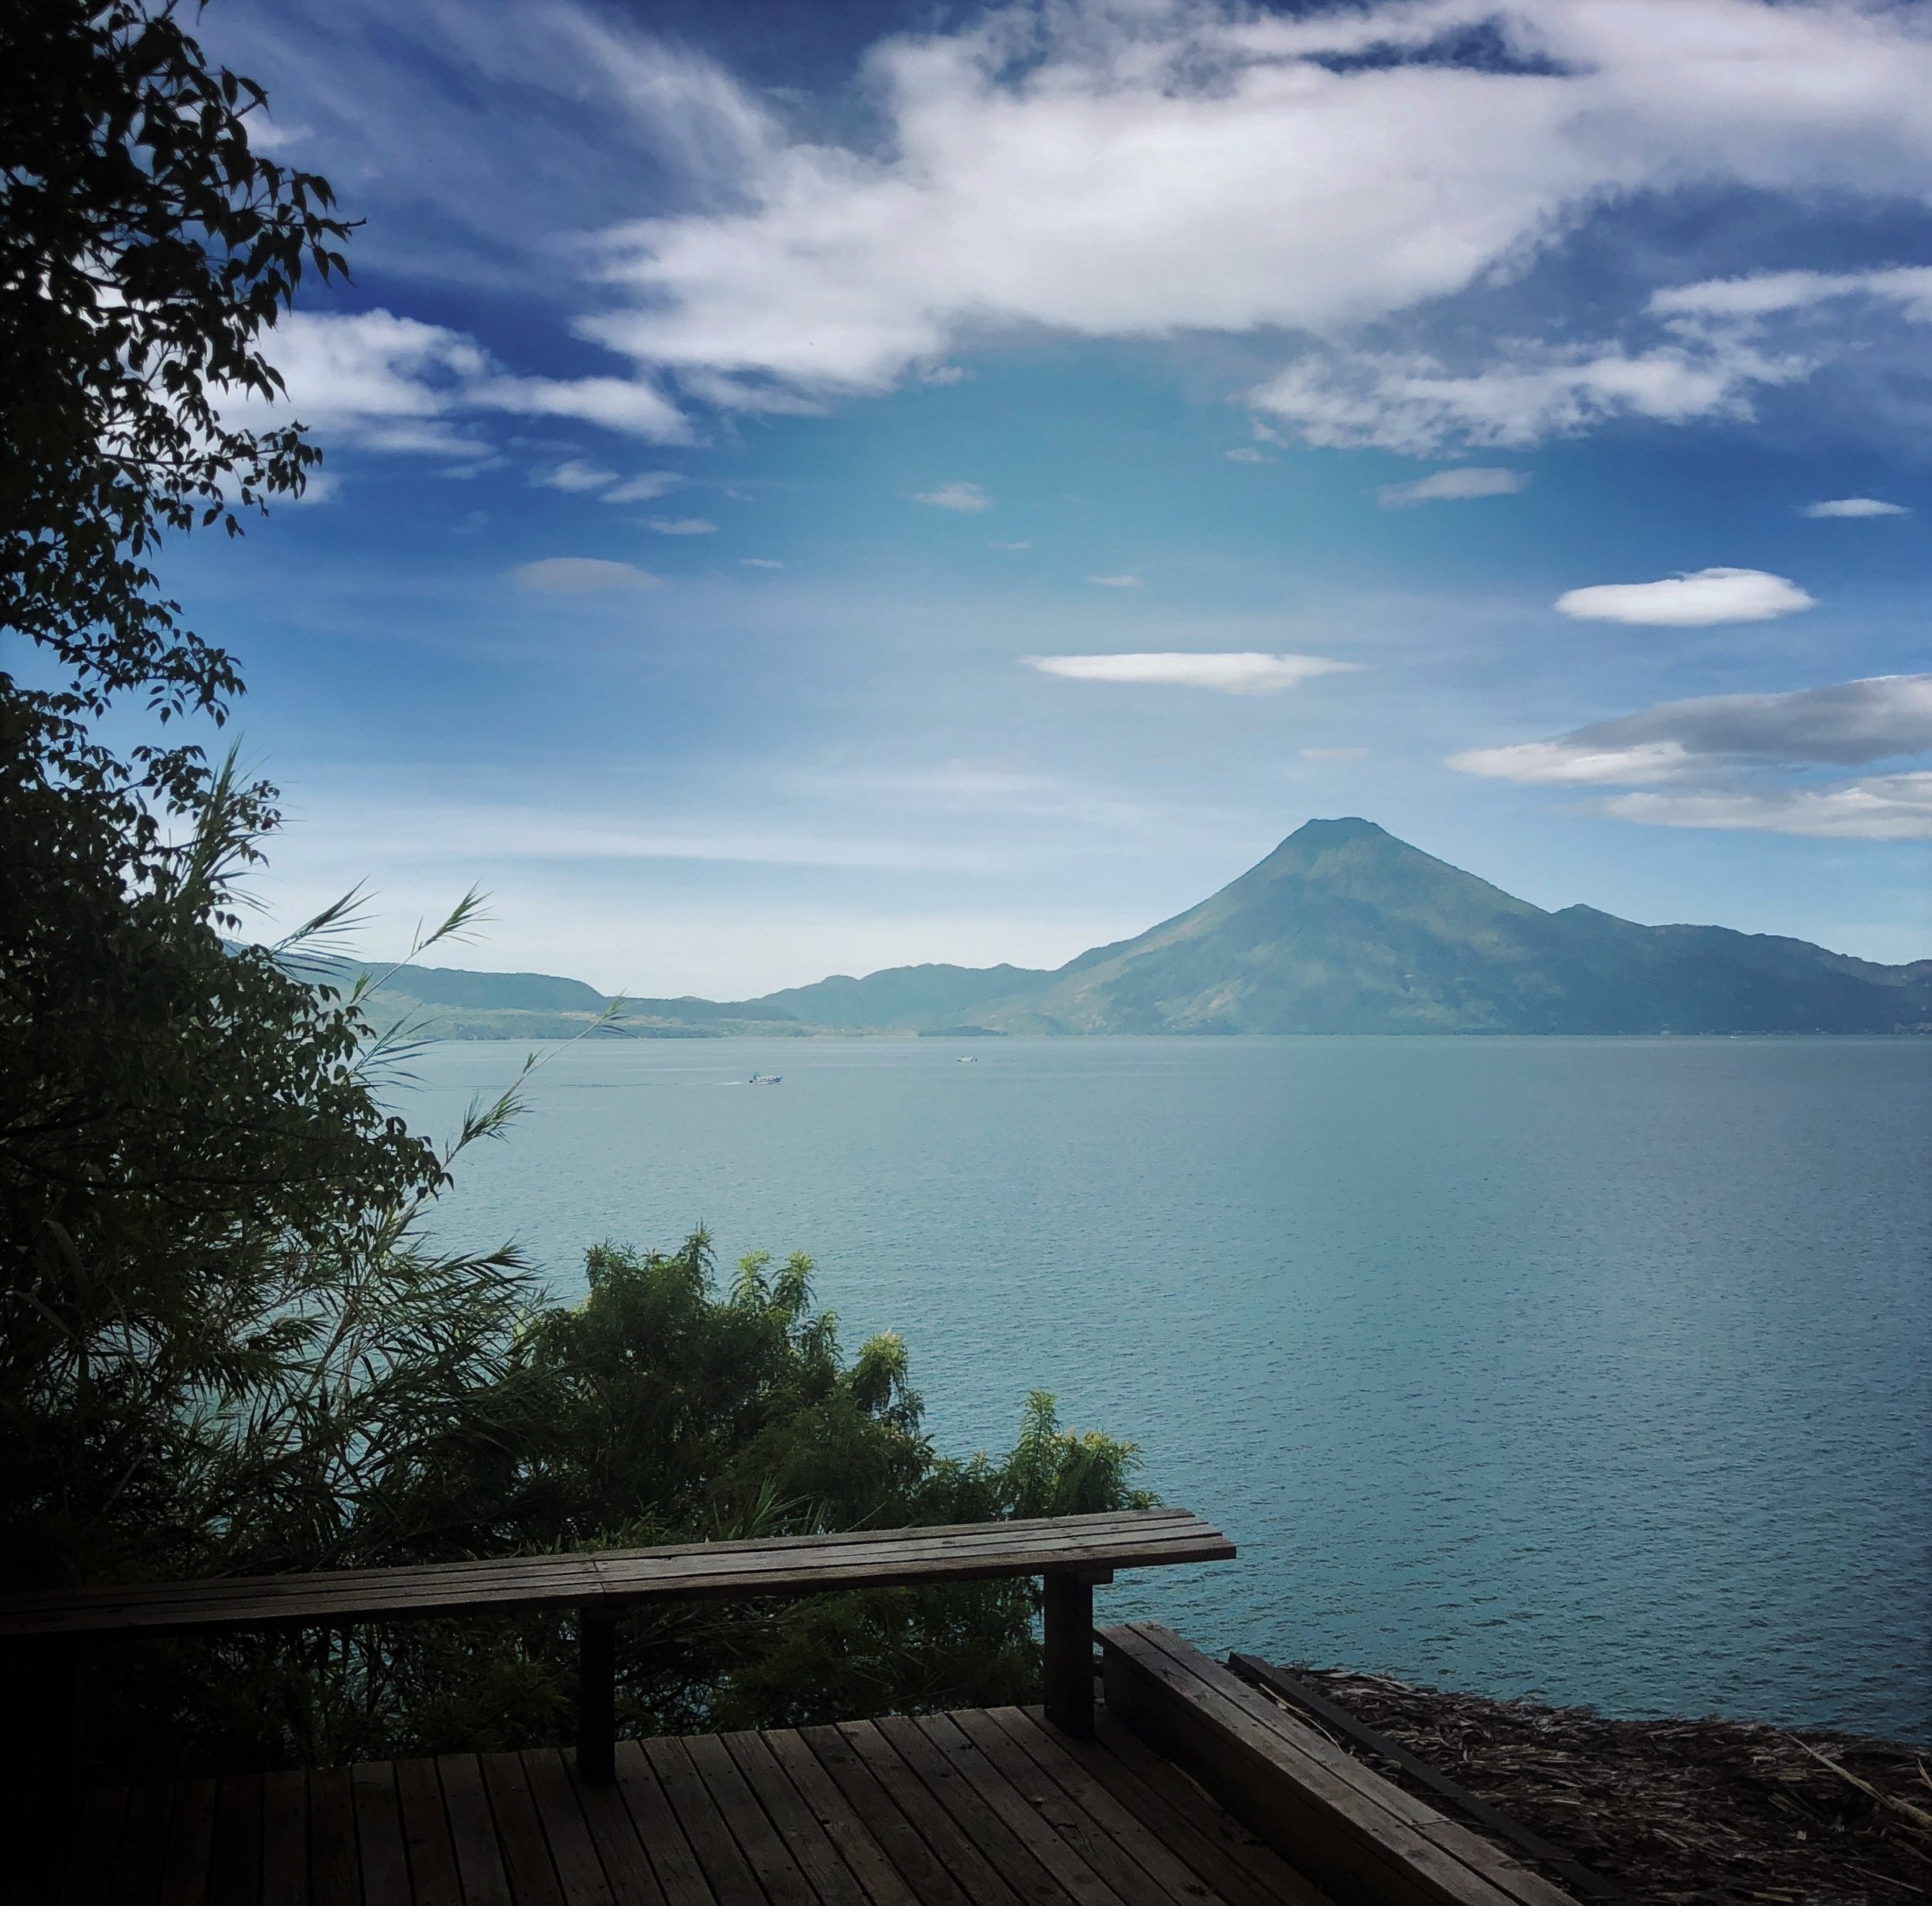 ART RETREATS - ANTIGUA + LAKE ATITLAN GuaTEMALA